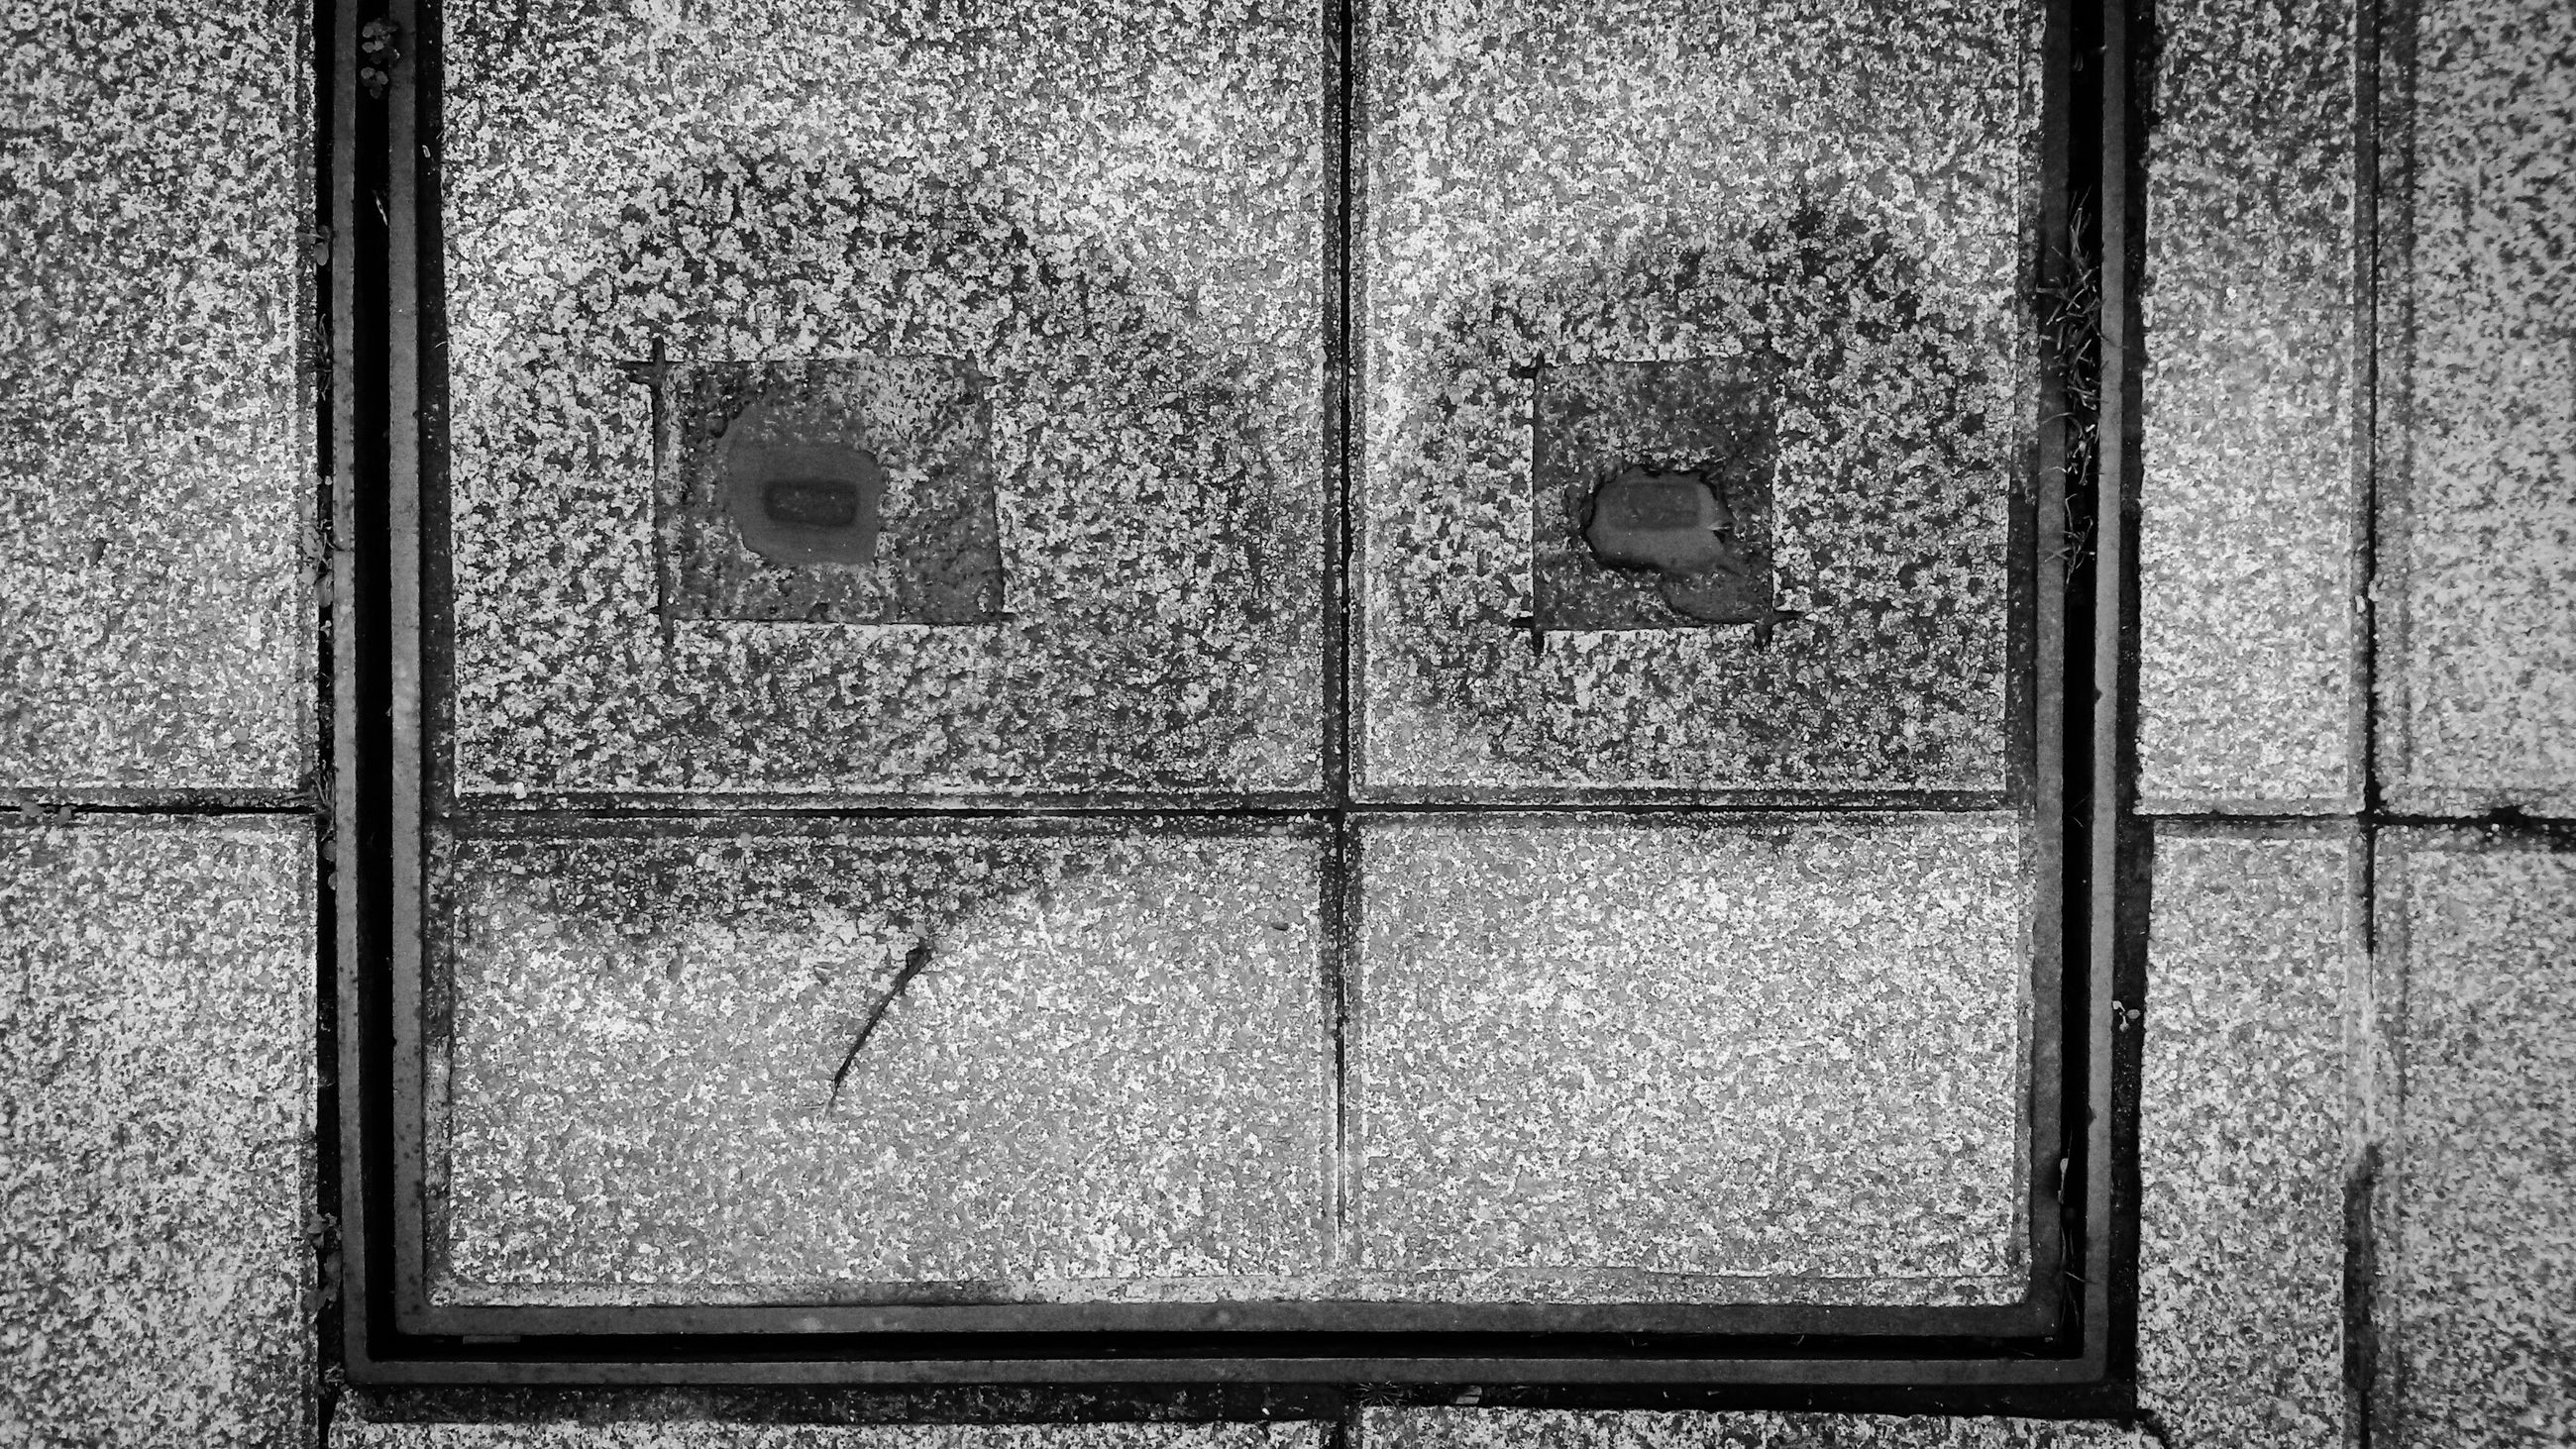 full frame, backgrounds, metal, textured, close-up, door, pattern, closed, protection, safety, built structure, security, old, architecture, indoors, window, wall - building feature, weathered, metallic, detail